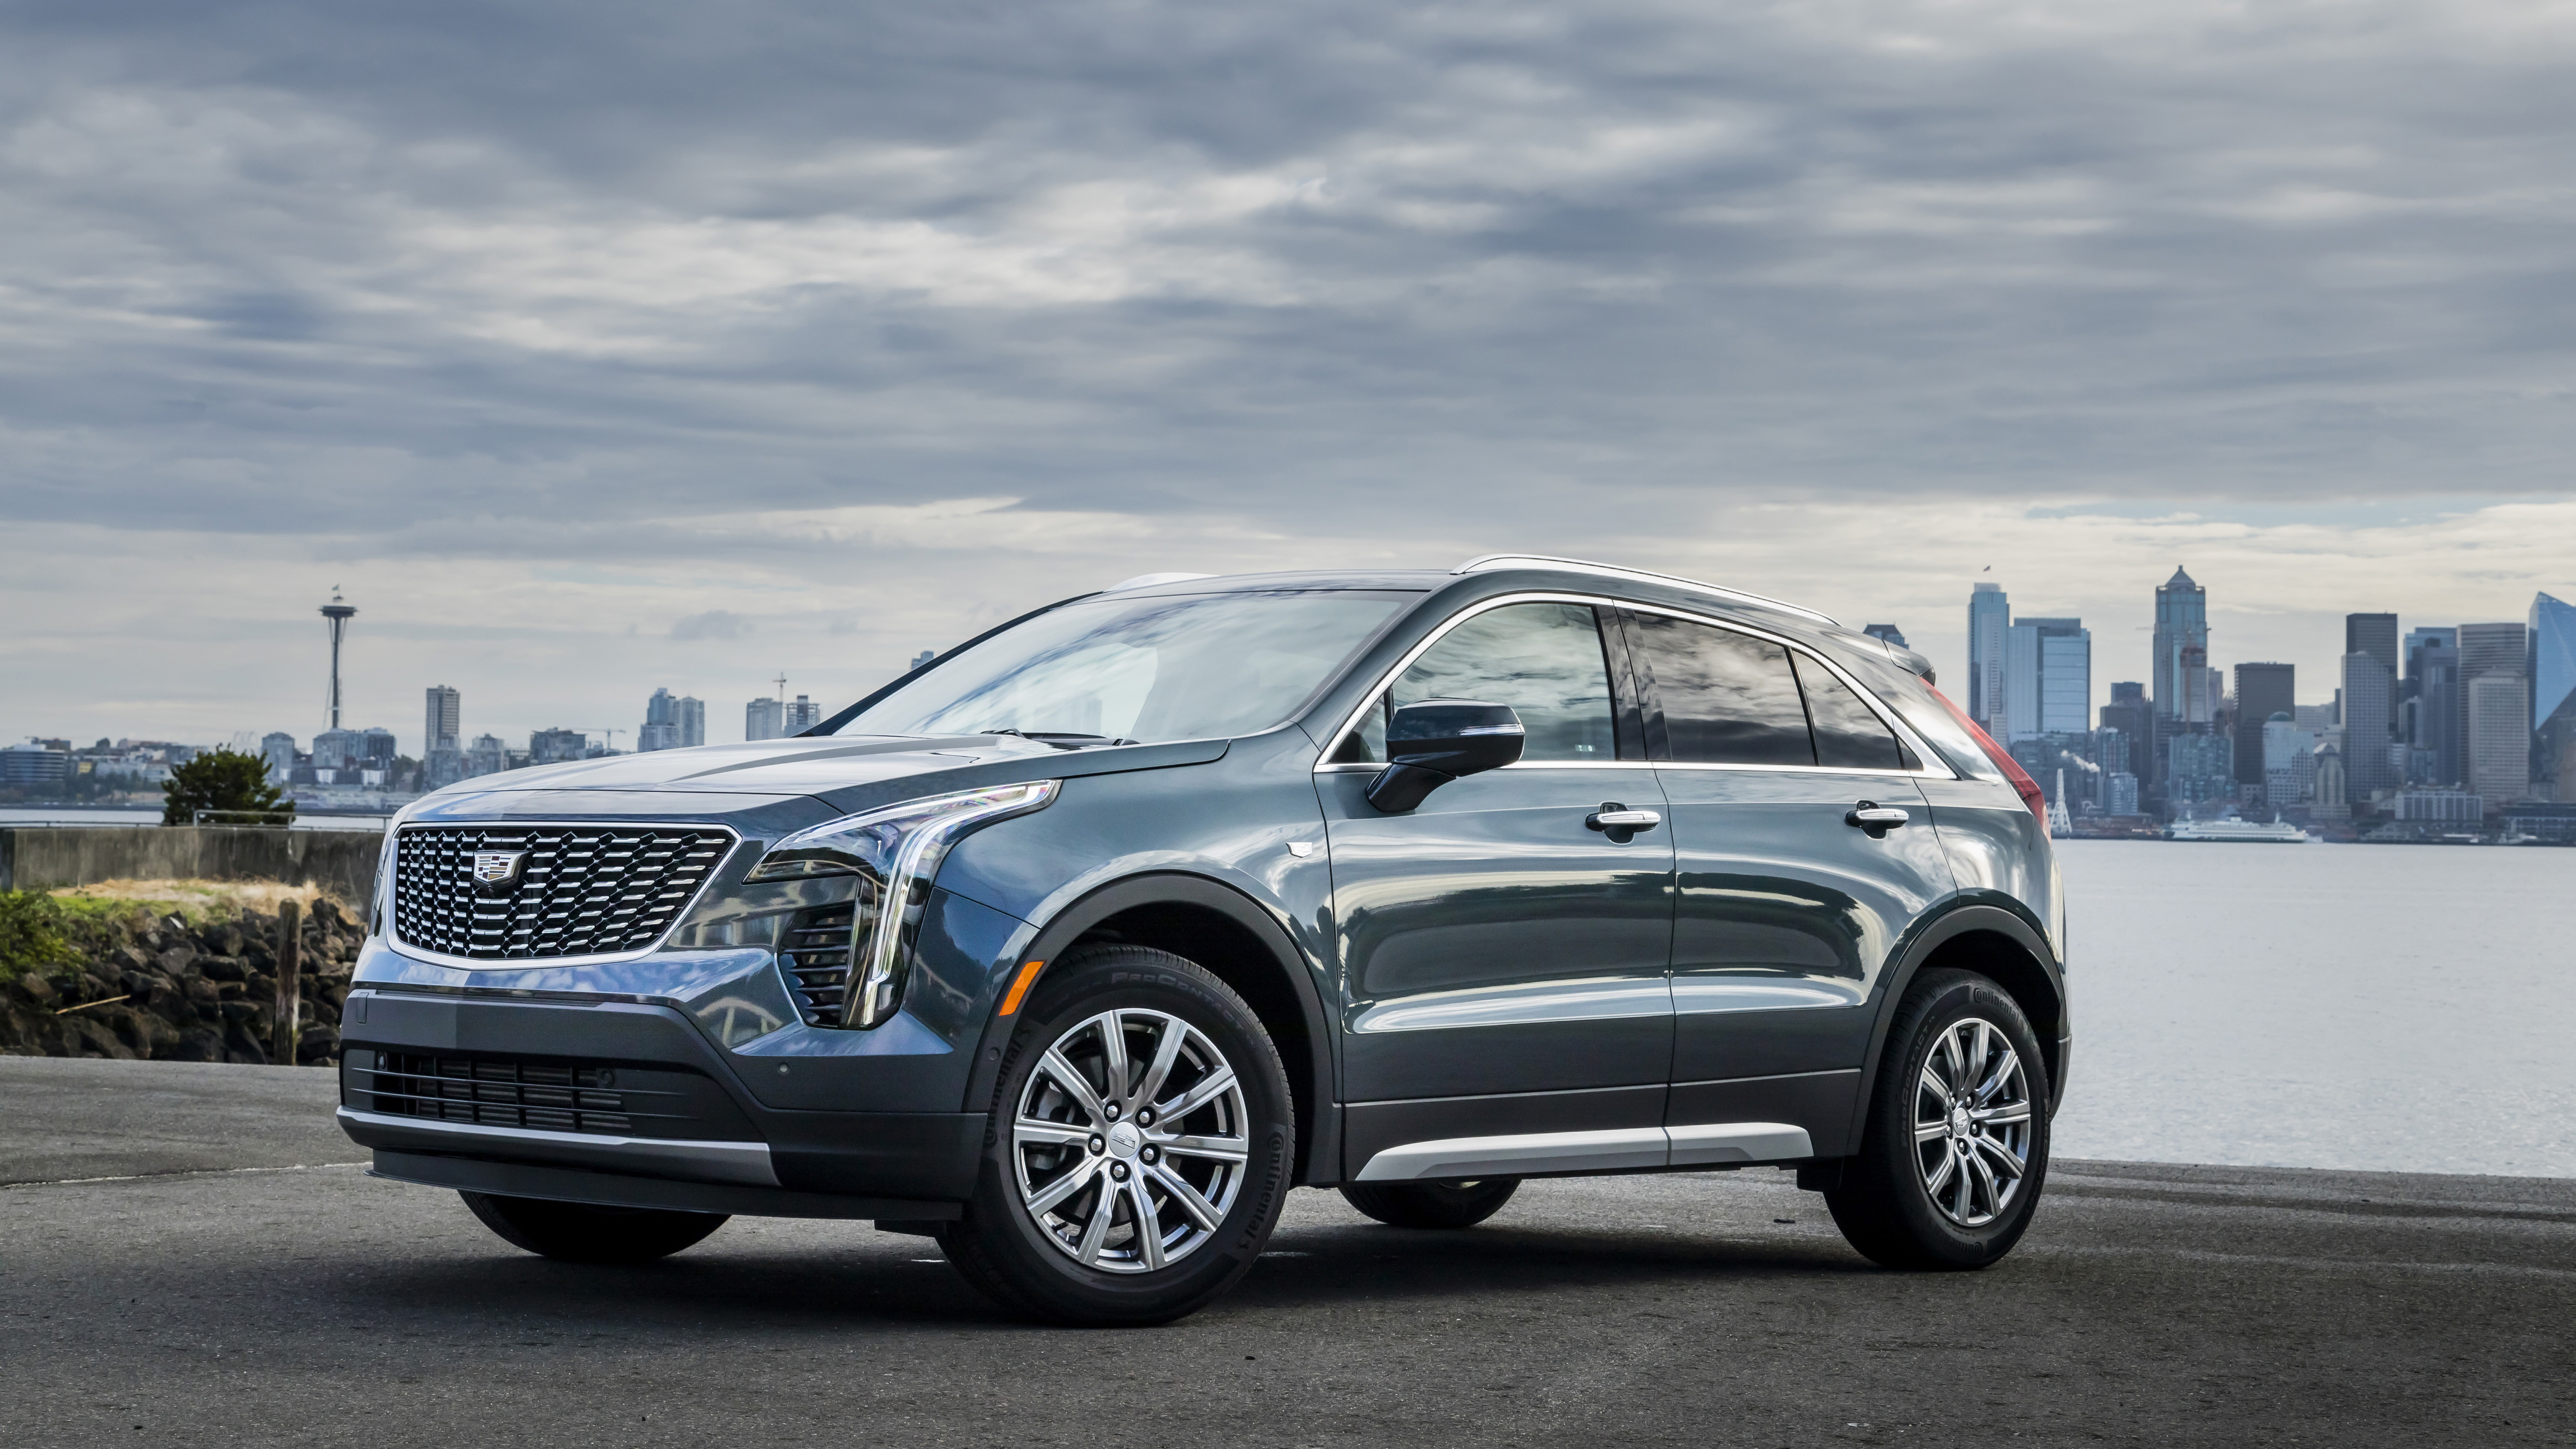 Best Cordless Drill 2020 2020 Cadillac XT4 Reviews | Price, specs, features and photos